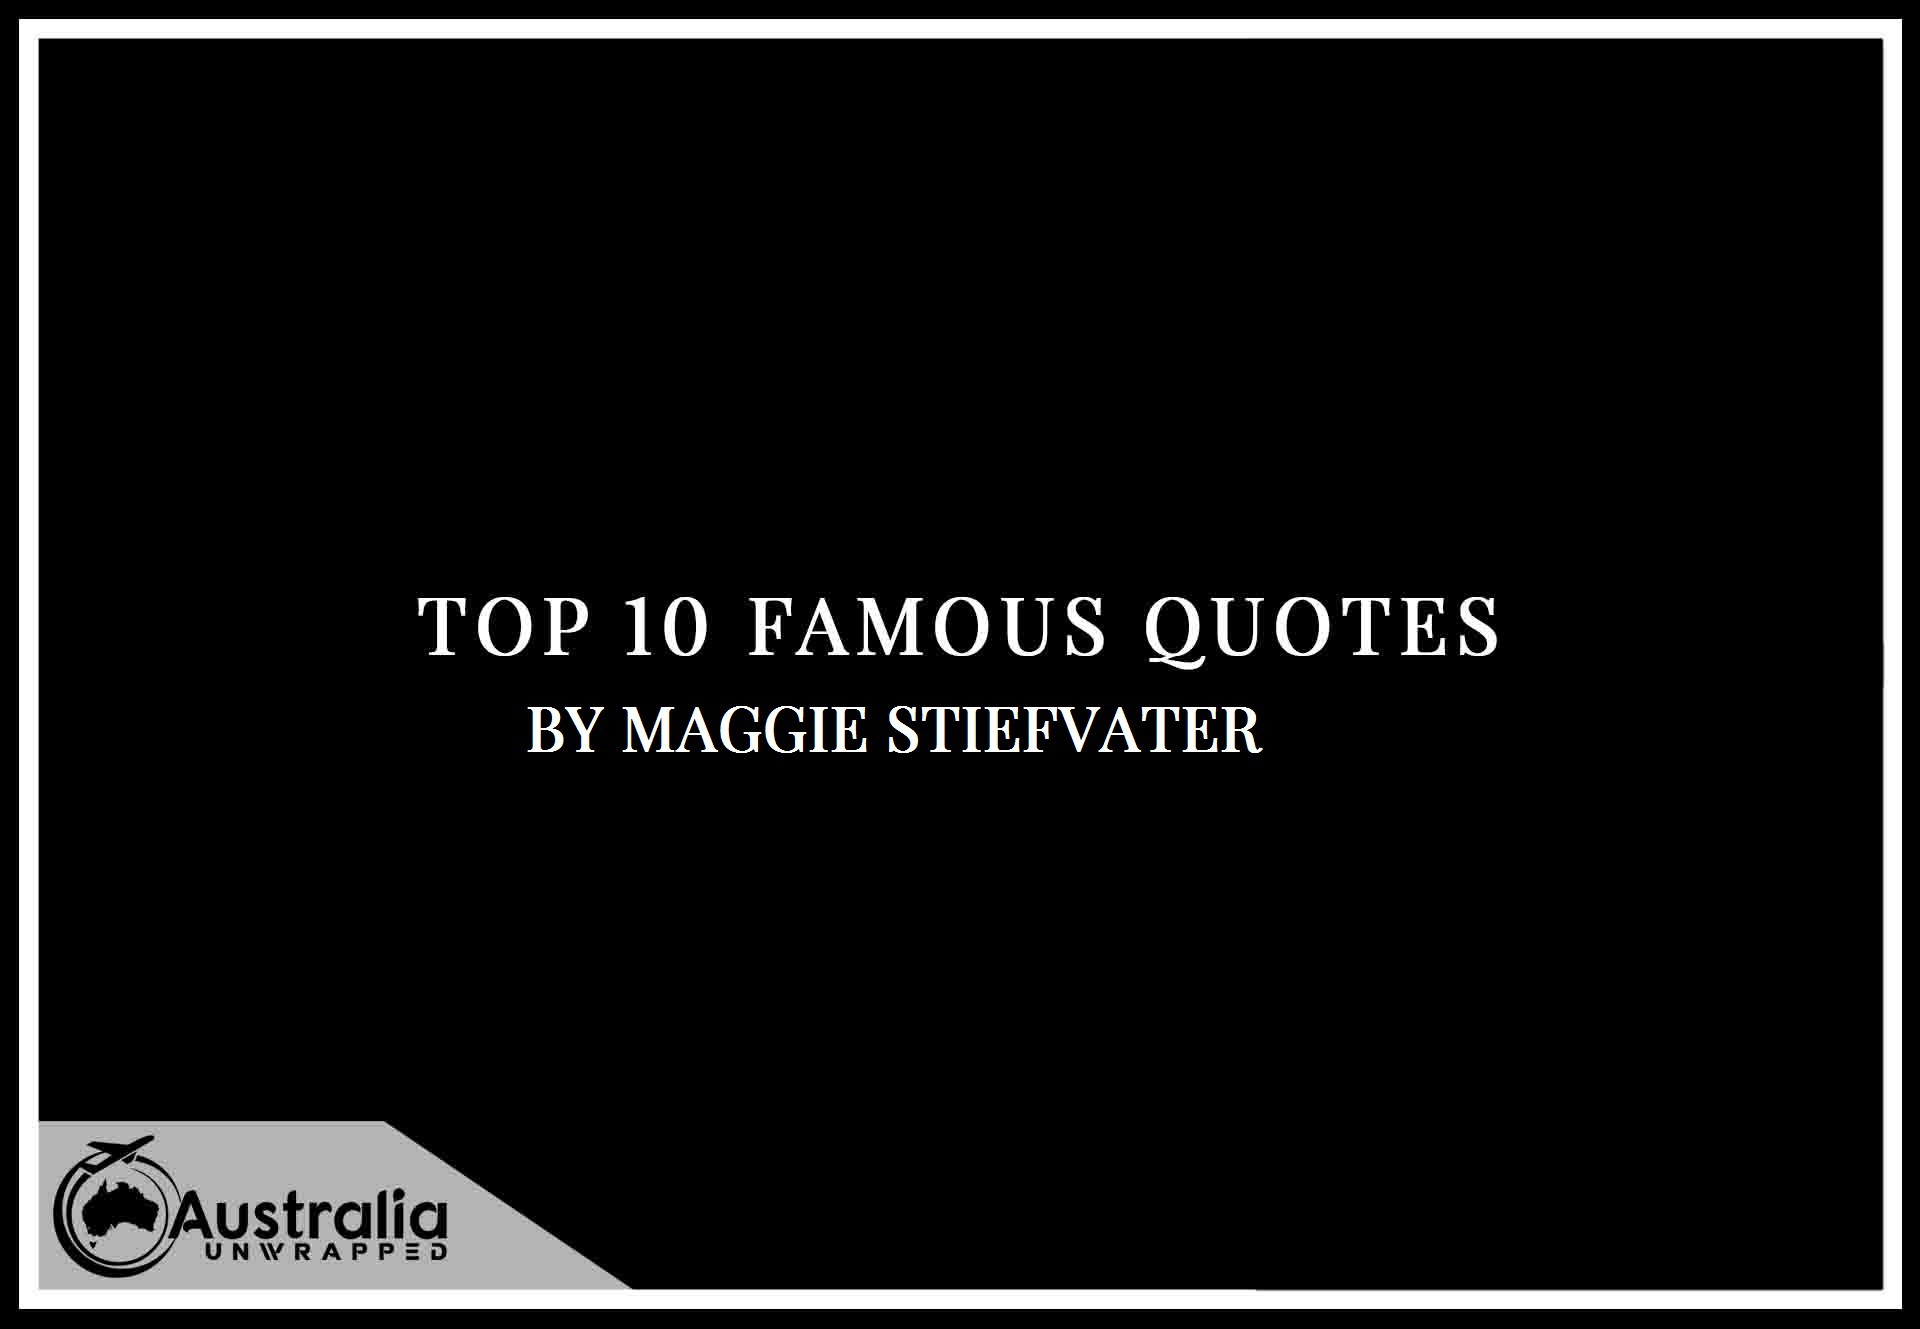 Maggie Stiefvater's Top 10 Popular and Famous Quotes